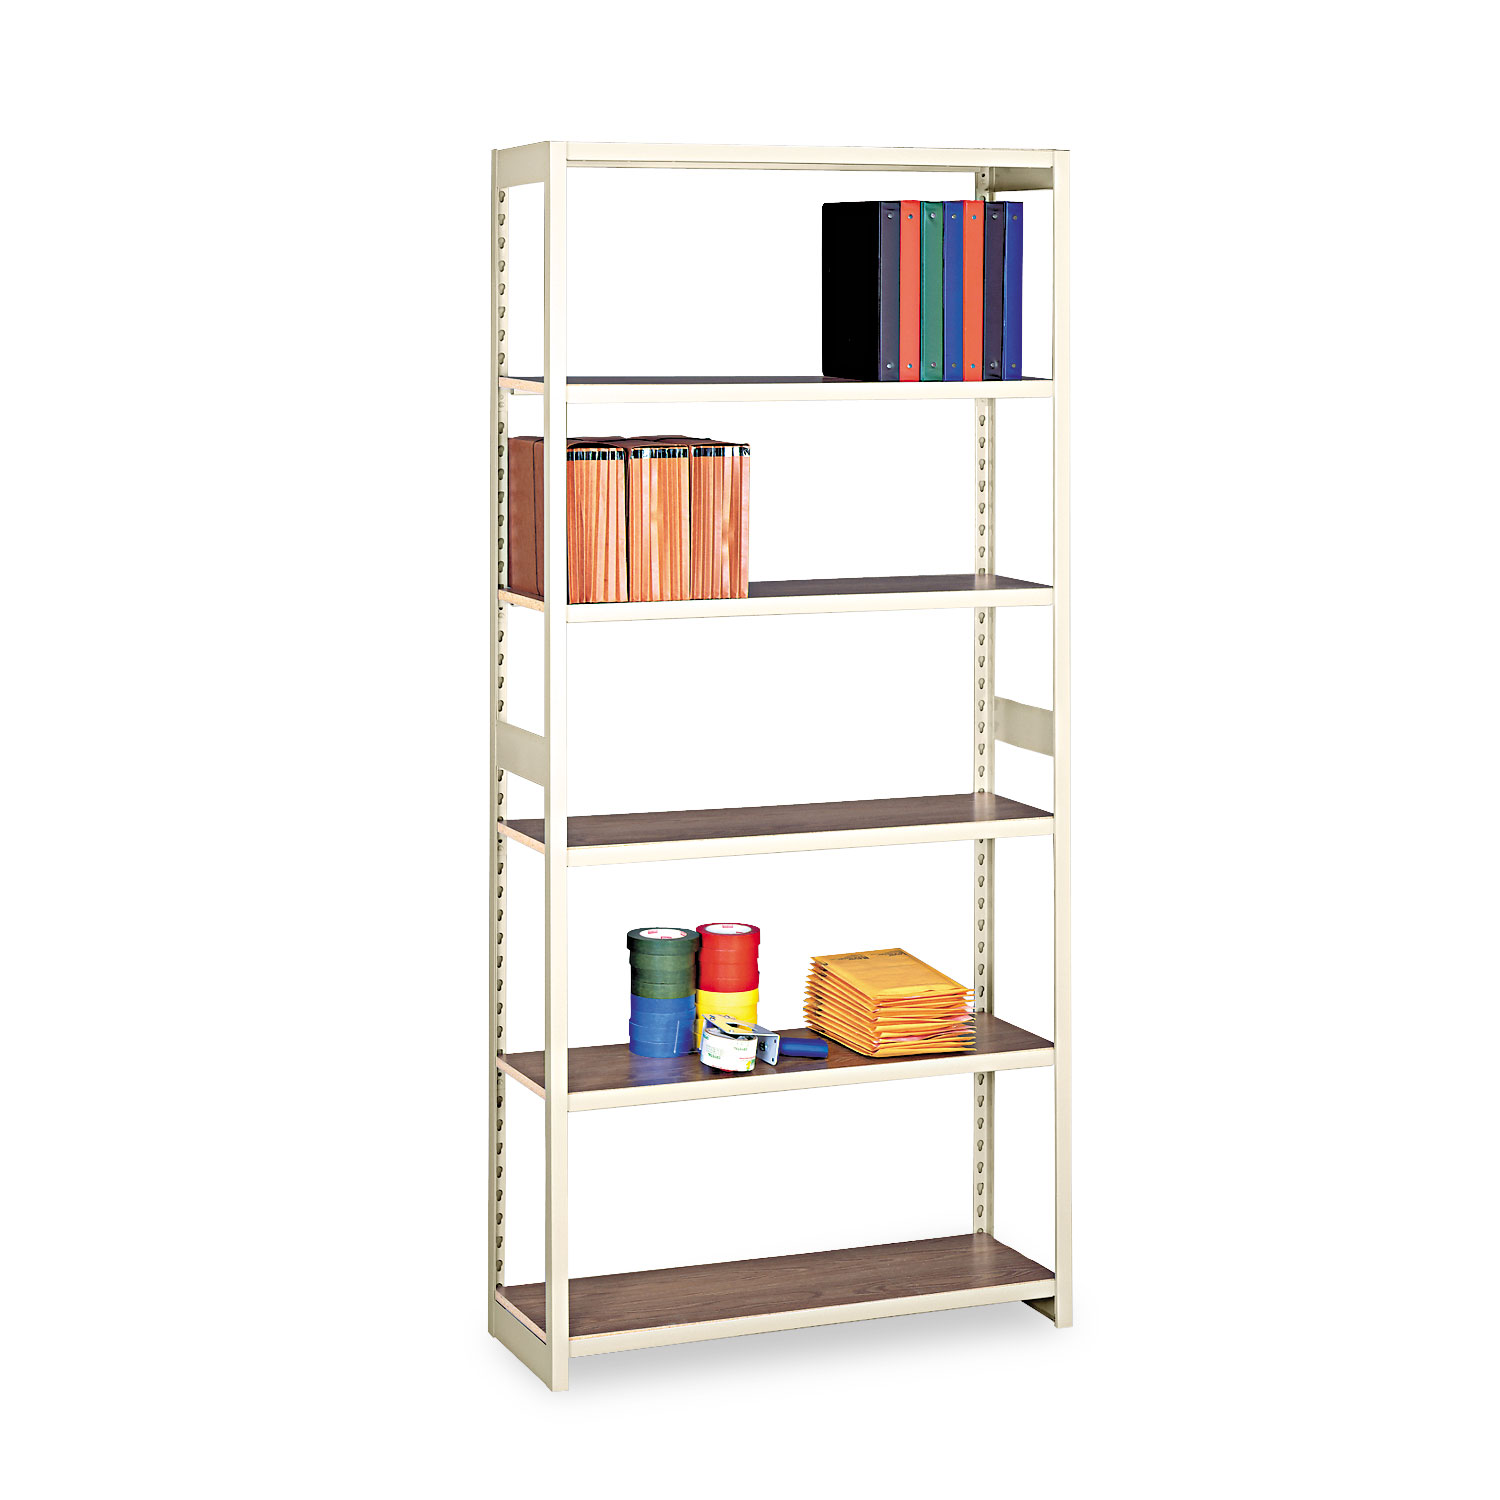 Regal Shelfy Regal Shelving Starter Set By Tennsco Tnnrgl1536ssd